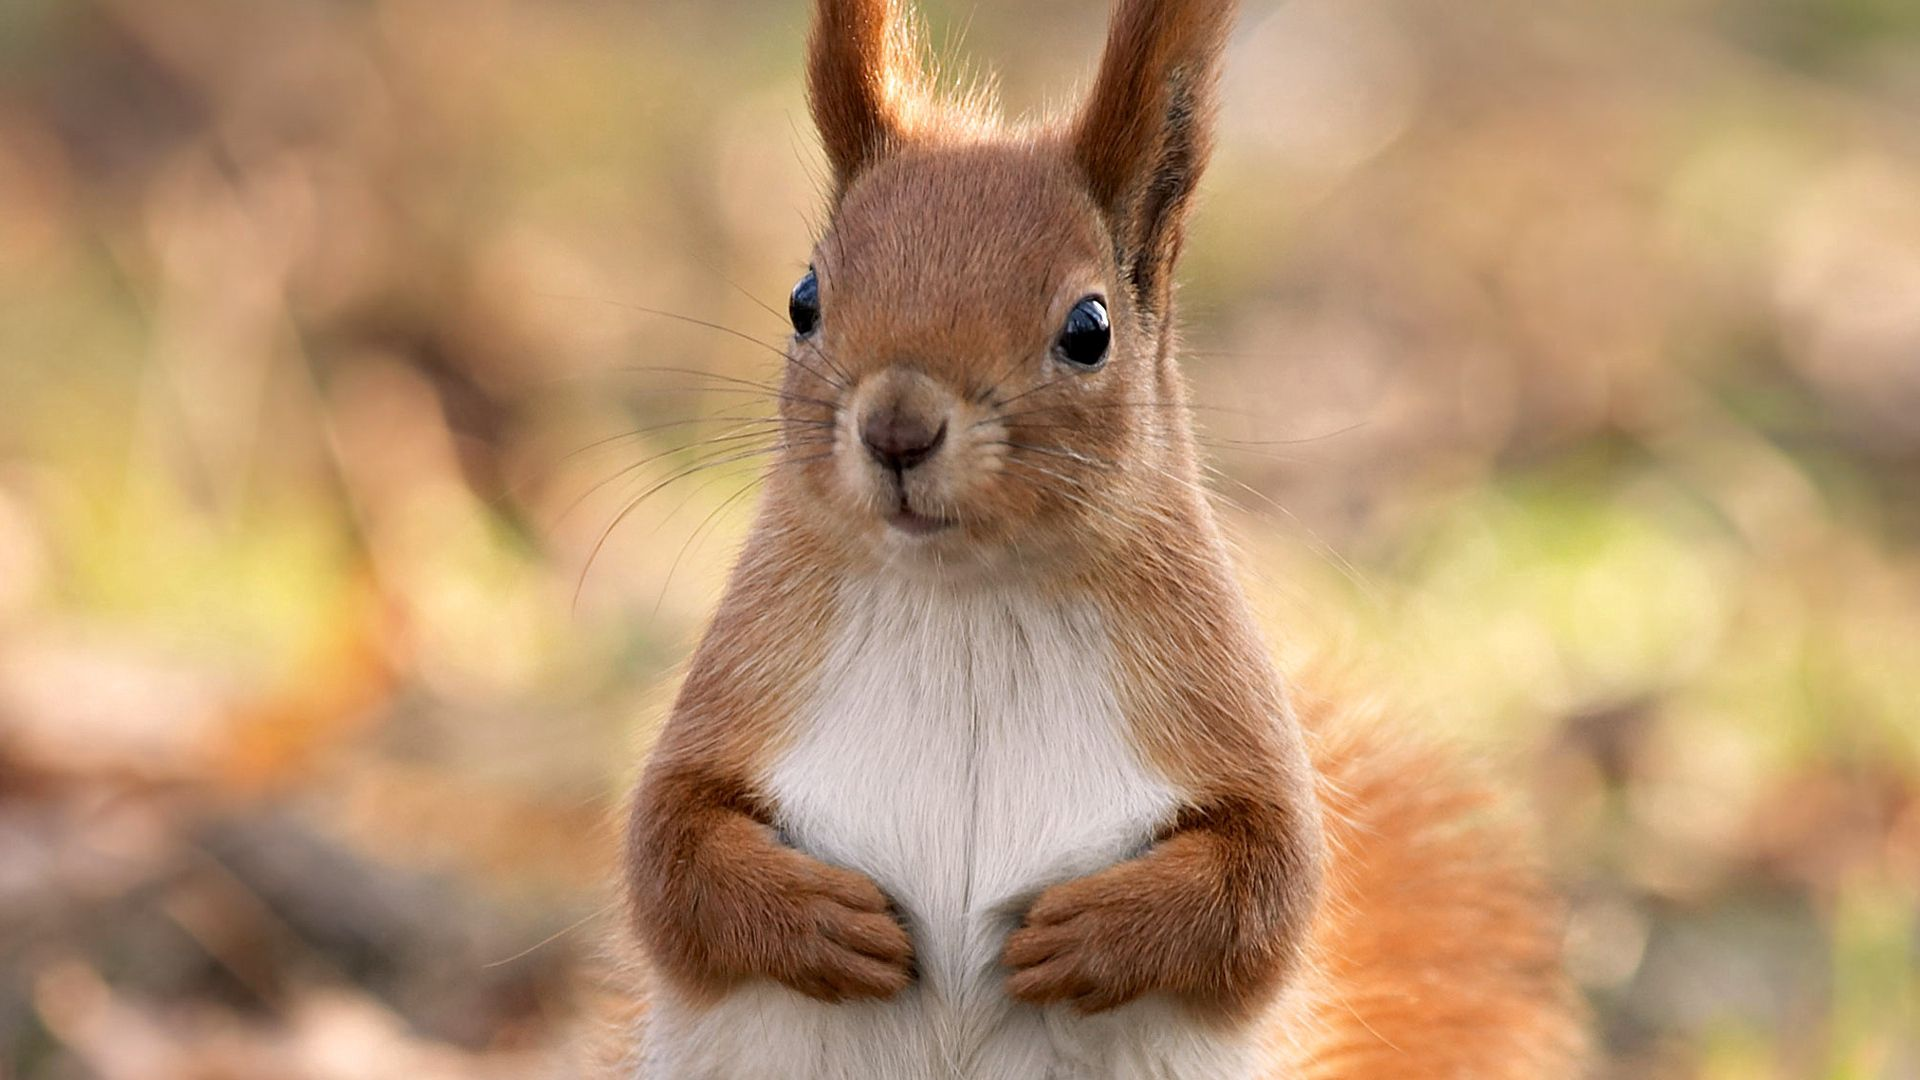 157904 Screensavers and Wallpapers Squirrel for phone. Download Animals, Squirrel, Muzzle, Sight, Opinion, Paws pictures for free